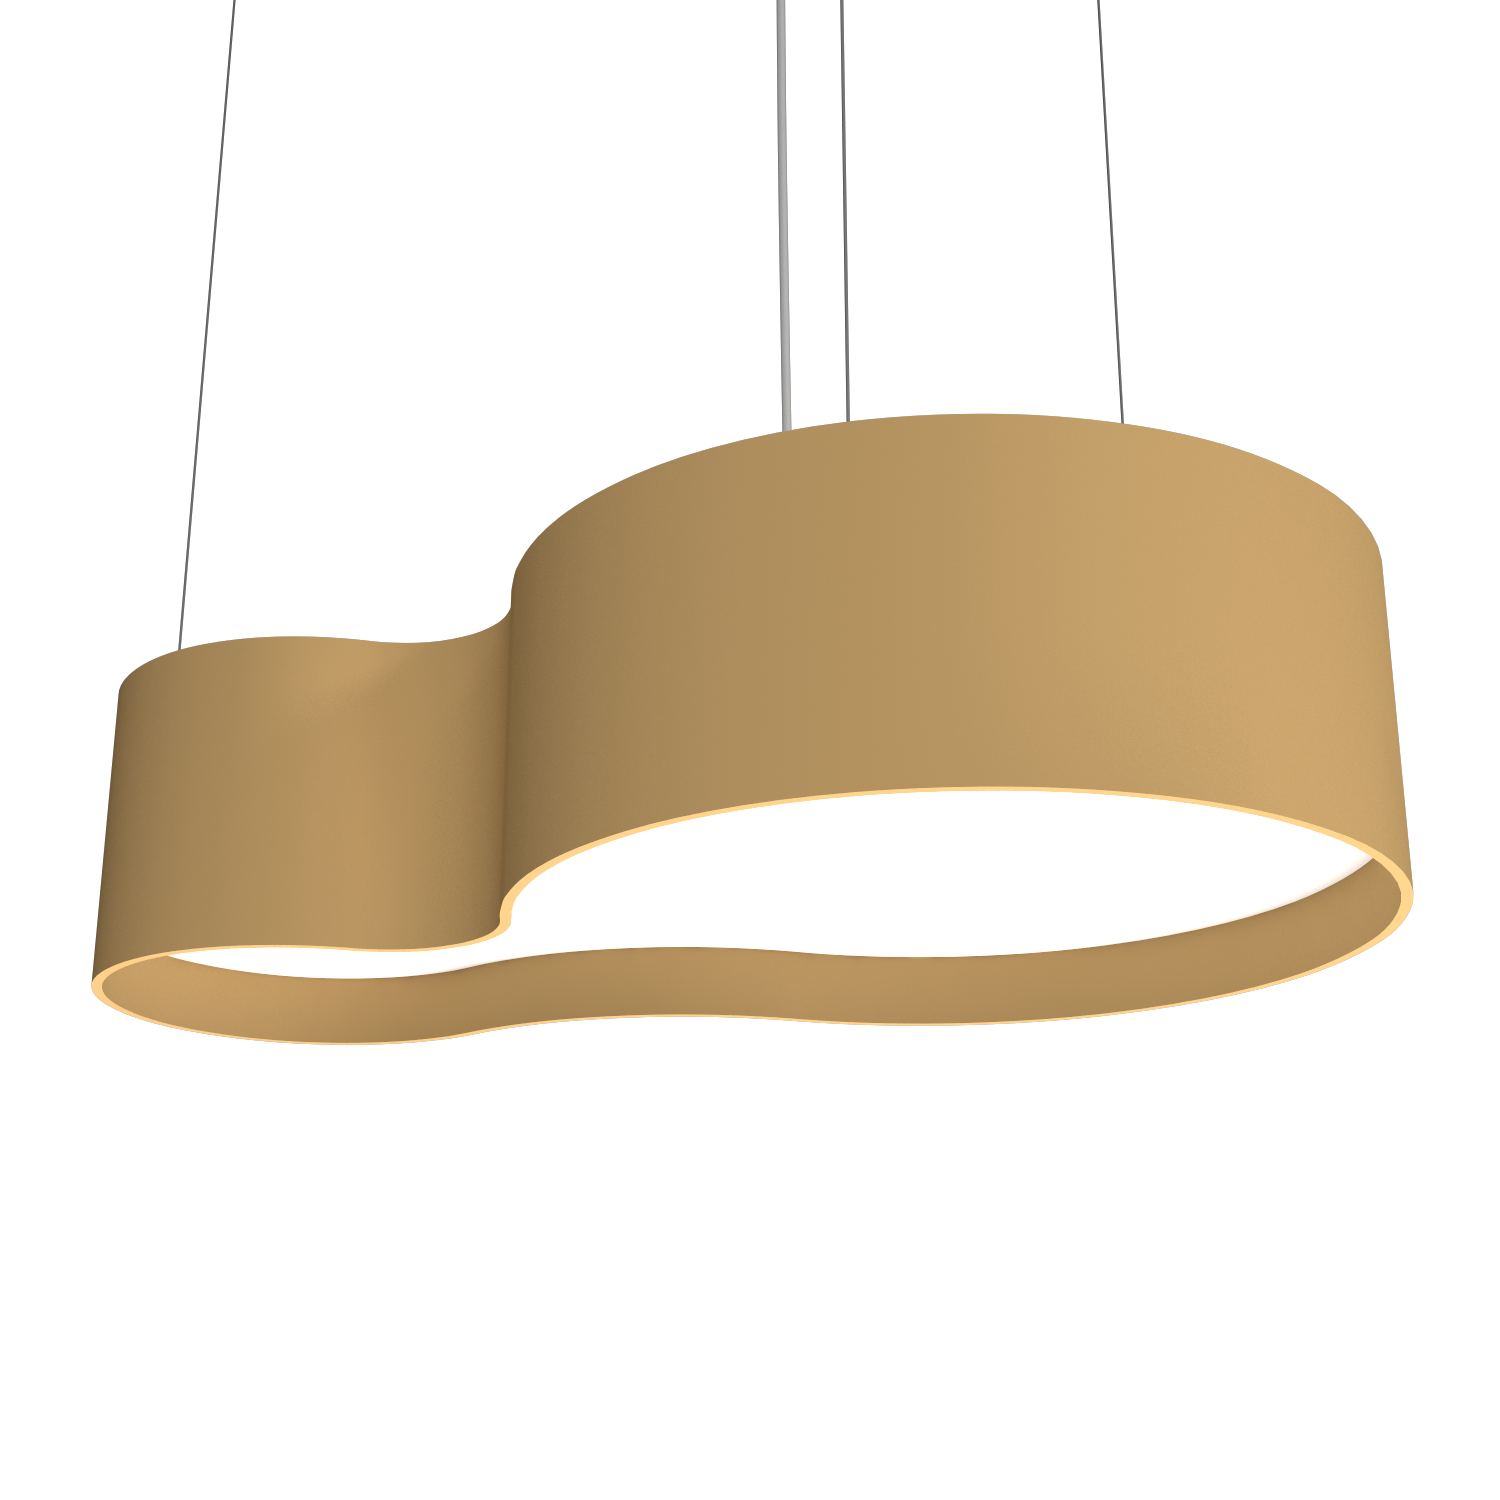 Pendant Lamp Accord Orgânico 285 - Orgânica Line Accord Lighting | 27. Gold